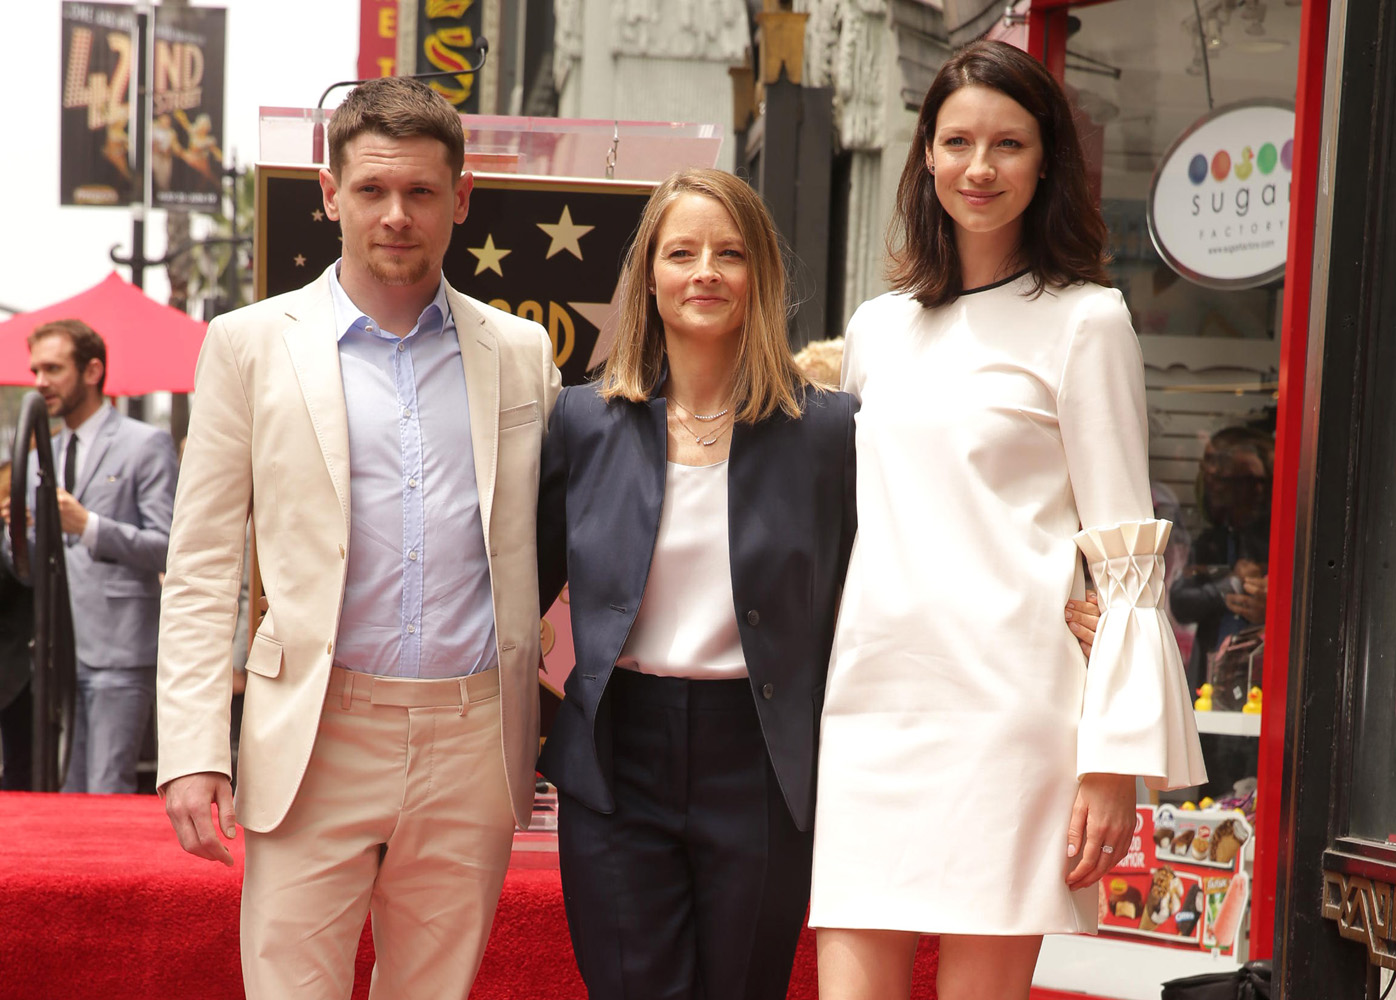 Jodie Foster Honored with Star on Hollywood Walk of Fame